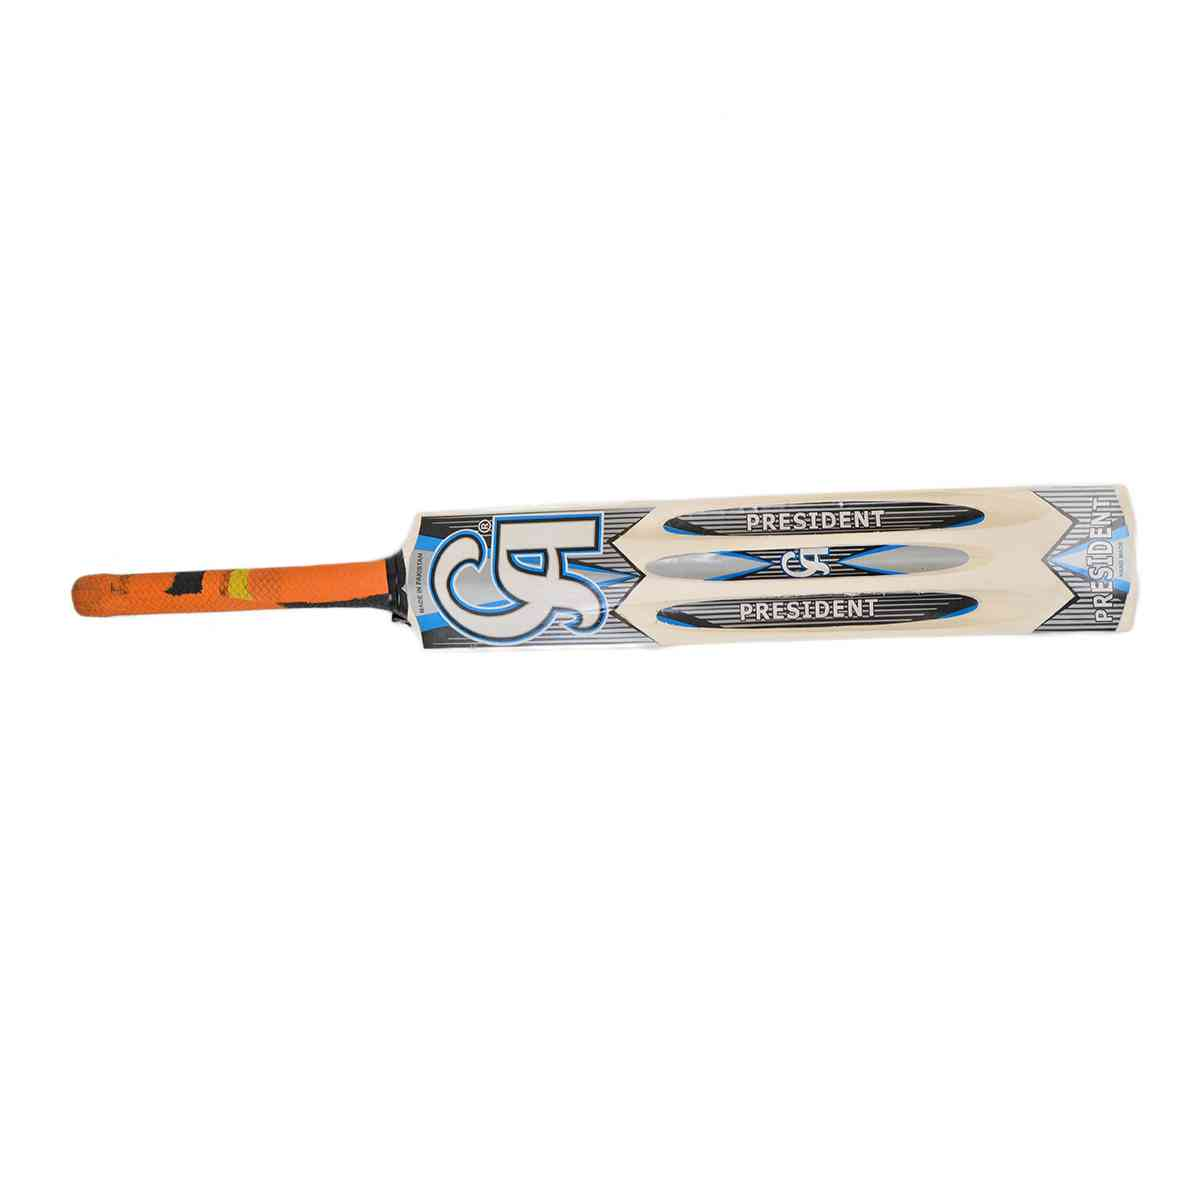 CA President Tape Ball Cricket Bat for Adults (33.5 Inch Length)